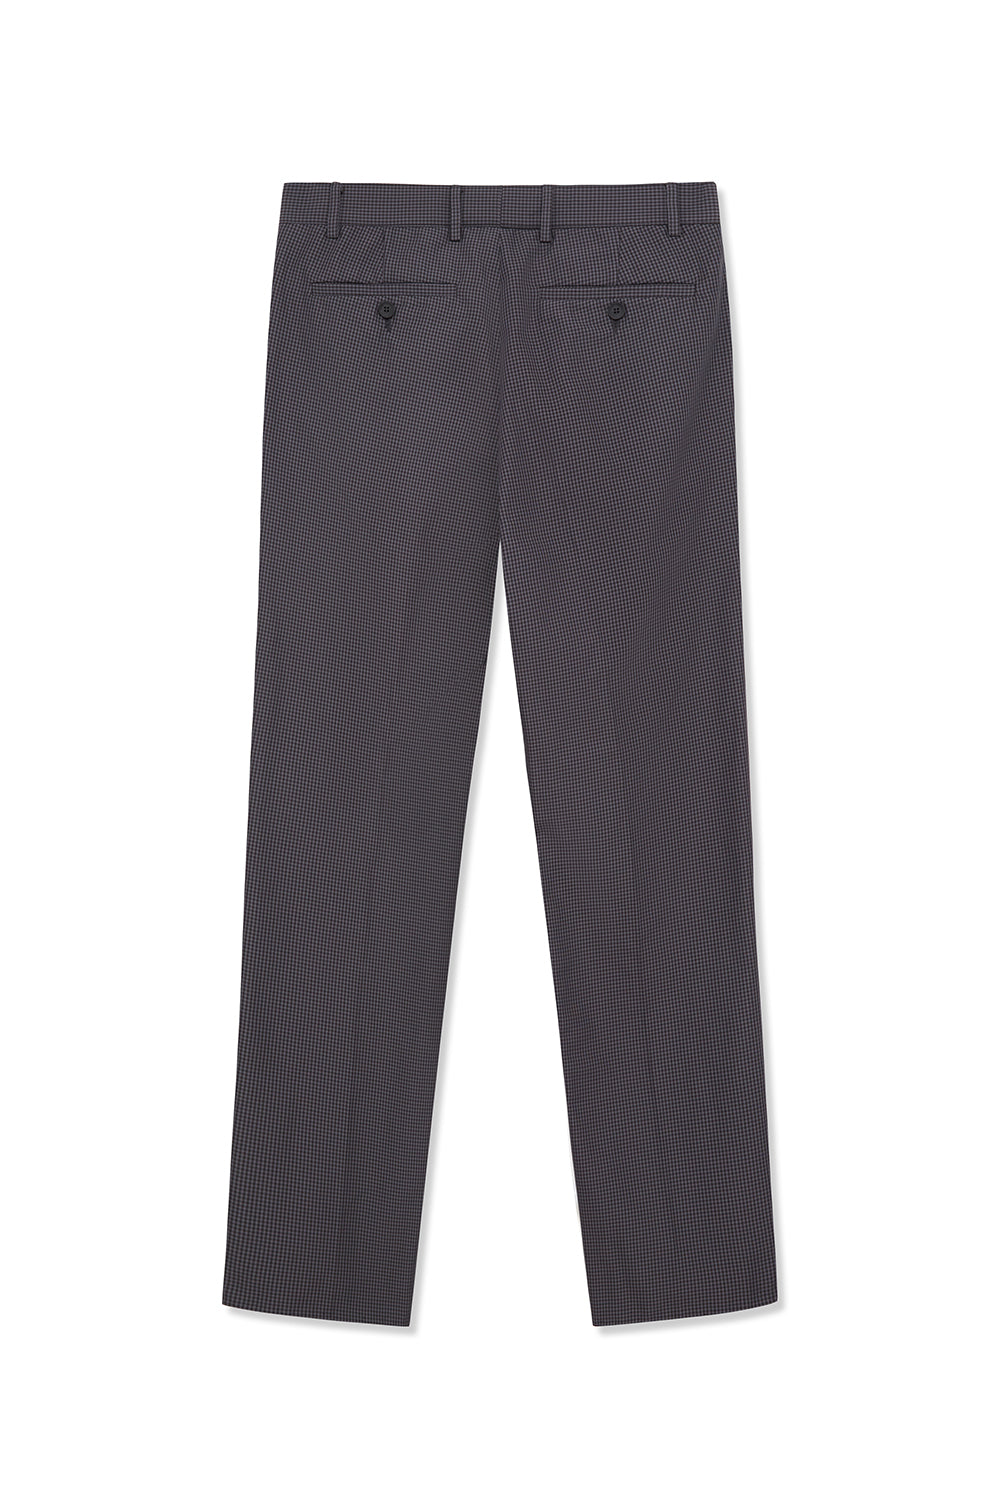 TARAFAH TECHNO CHECK TROUSERS